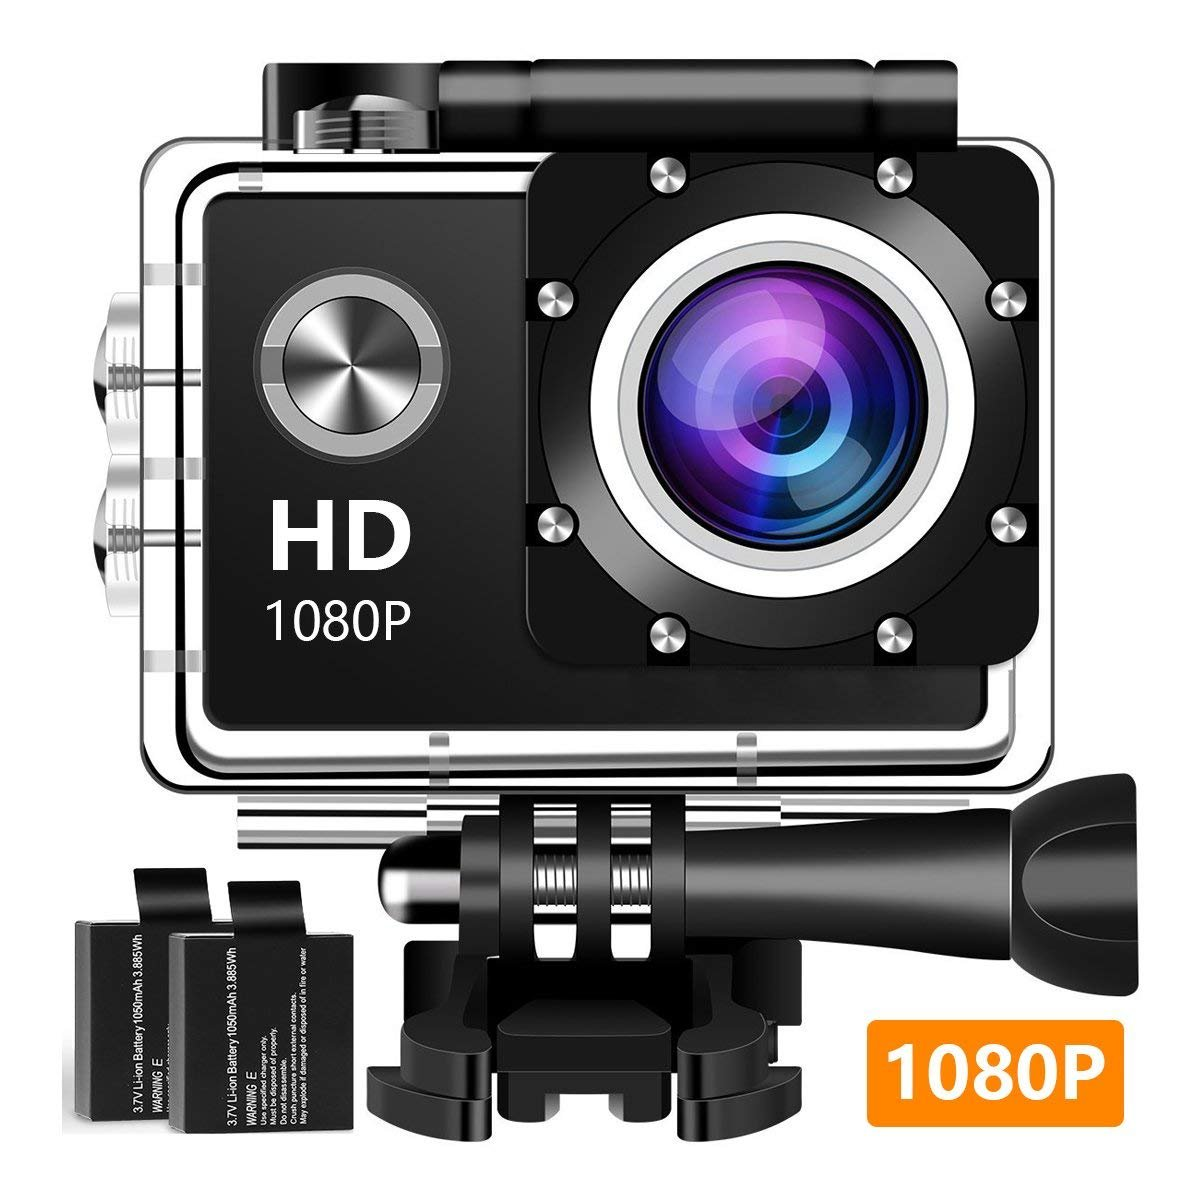 Action Camera Sport Camera 1080P Full HD Waterproof Underwater Camera Davola with 140° Wide-Angle Lens 12MP 2 Rechargeable Batteries and Mounting Accessories Kit - Black10 by Fiirrxi